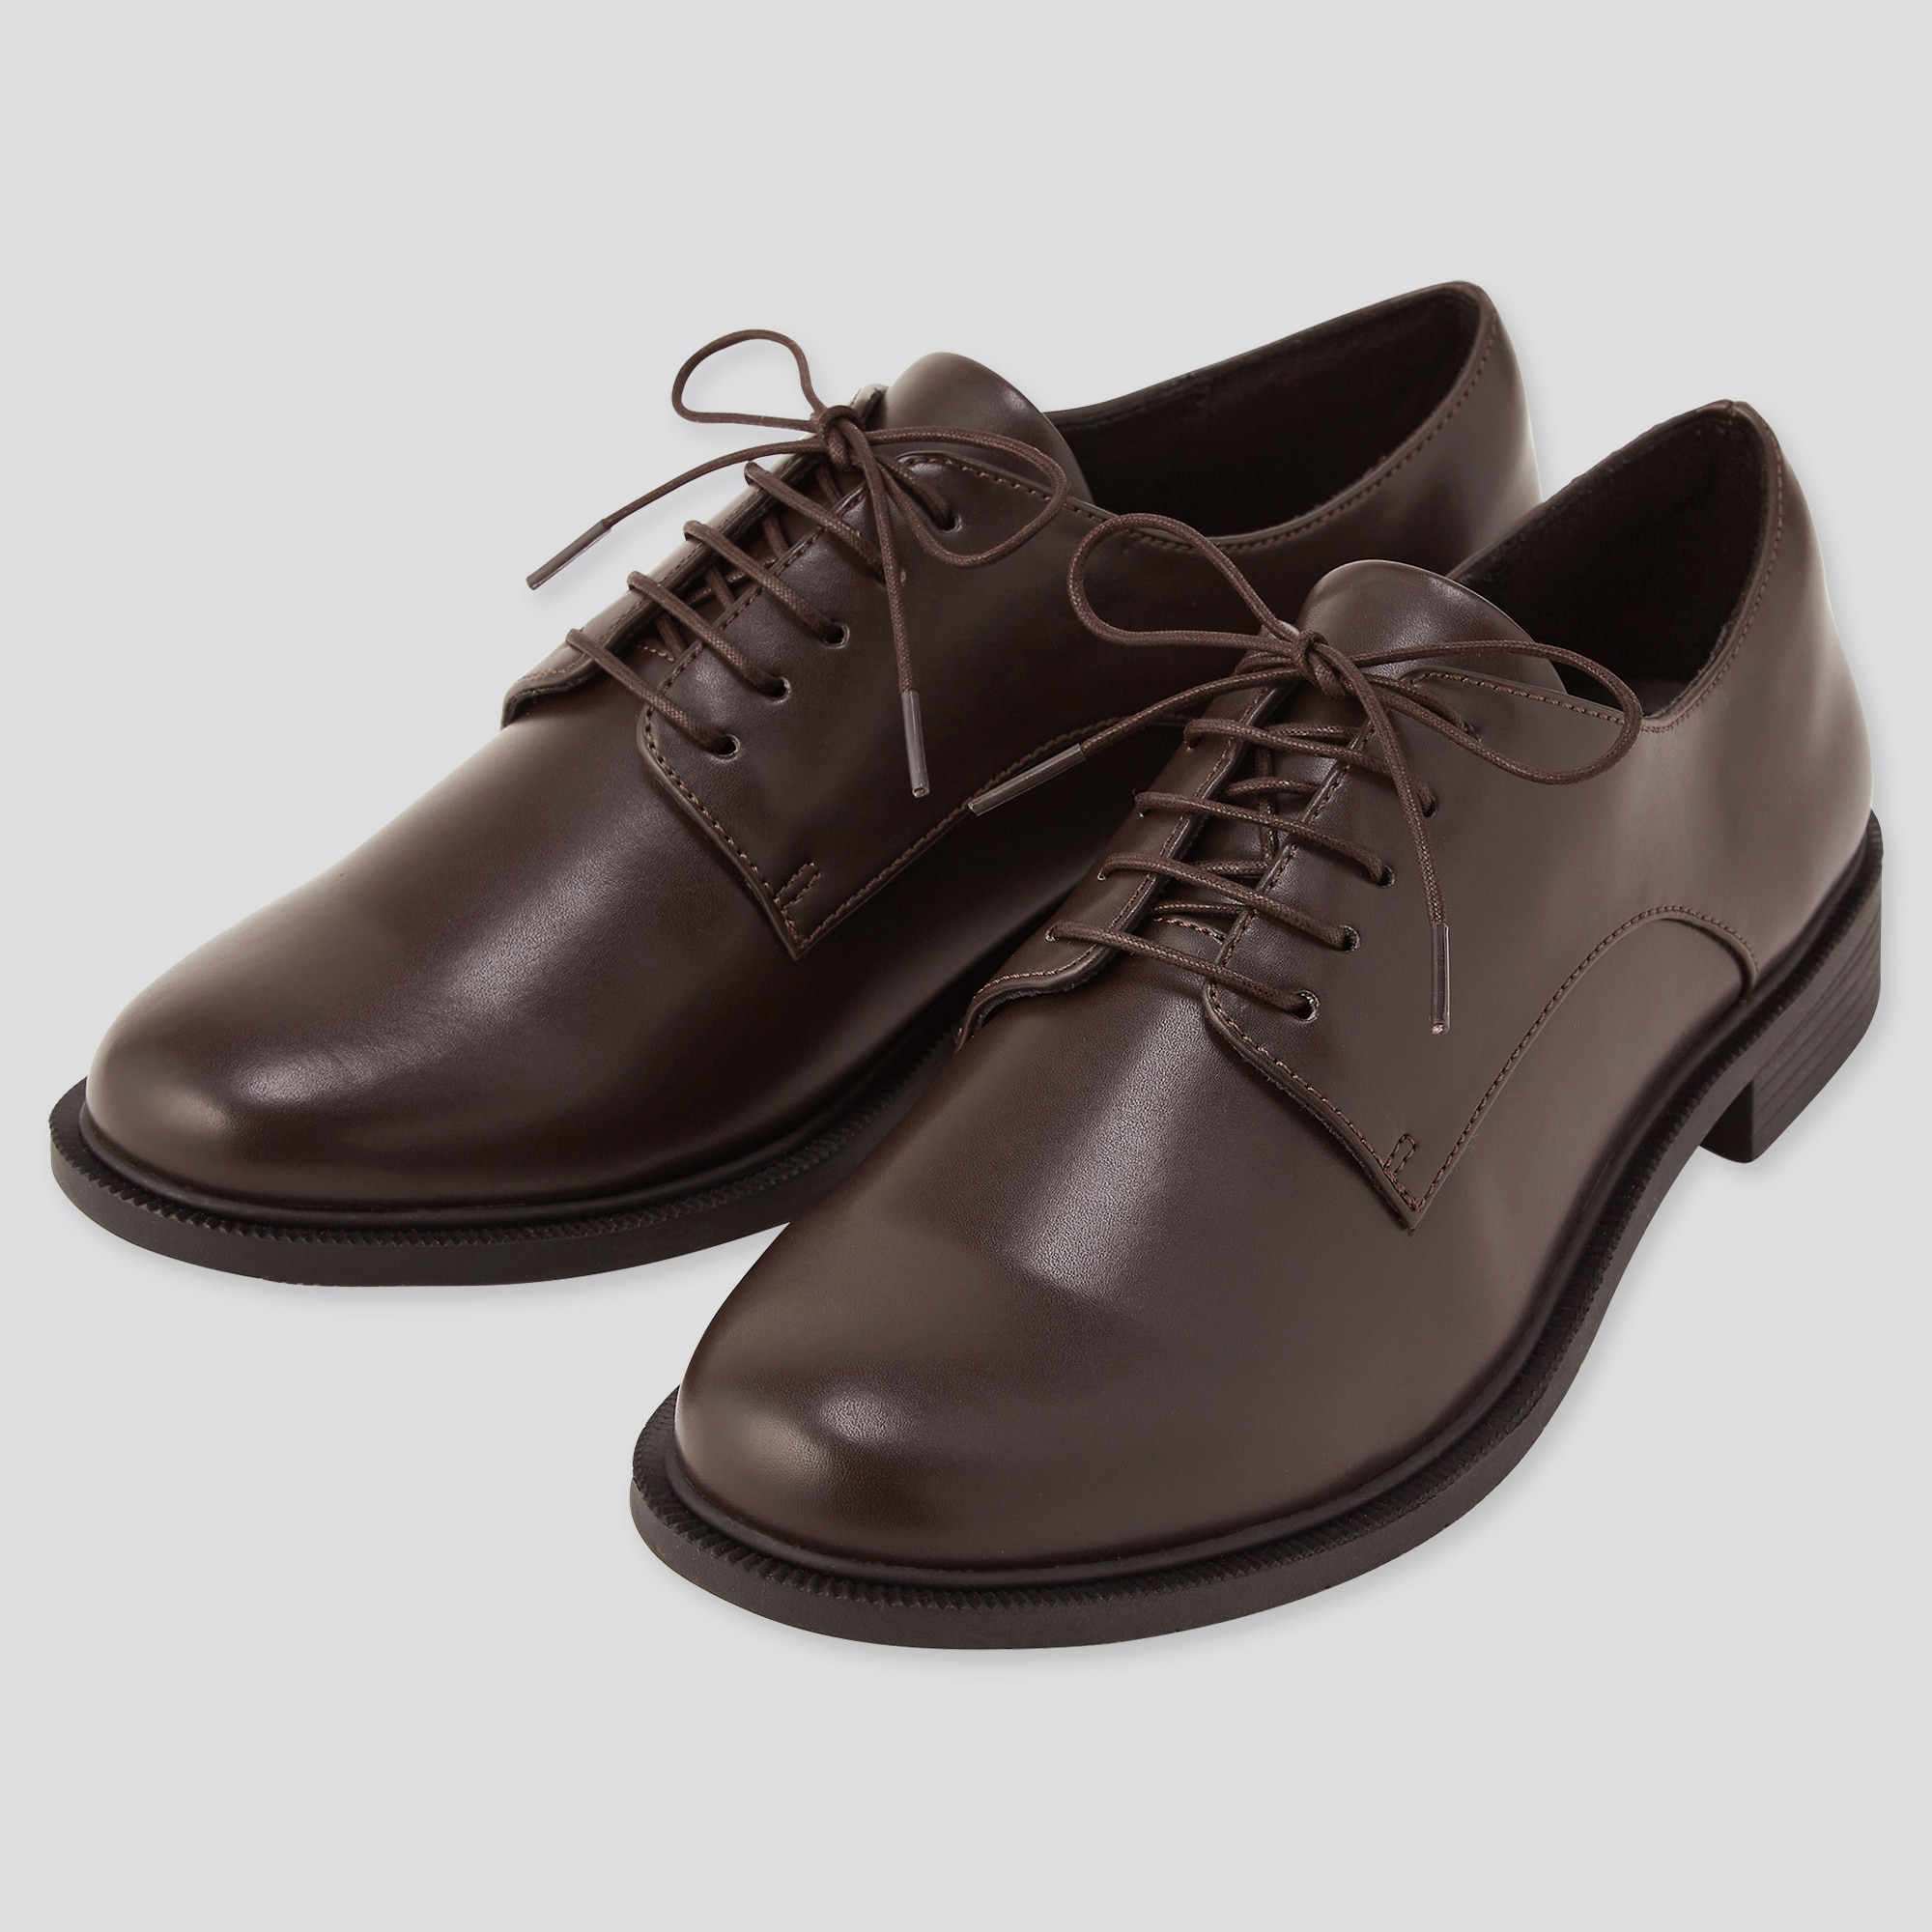 WOMEN COMFORT FEEL TOUCH LACE UP SHOES